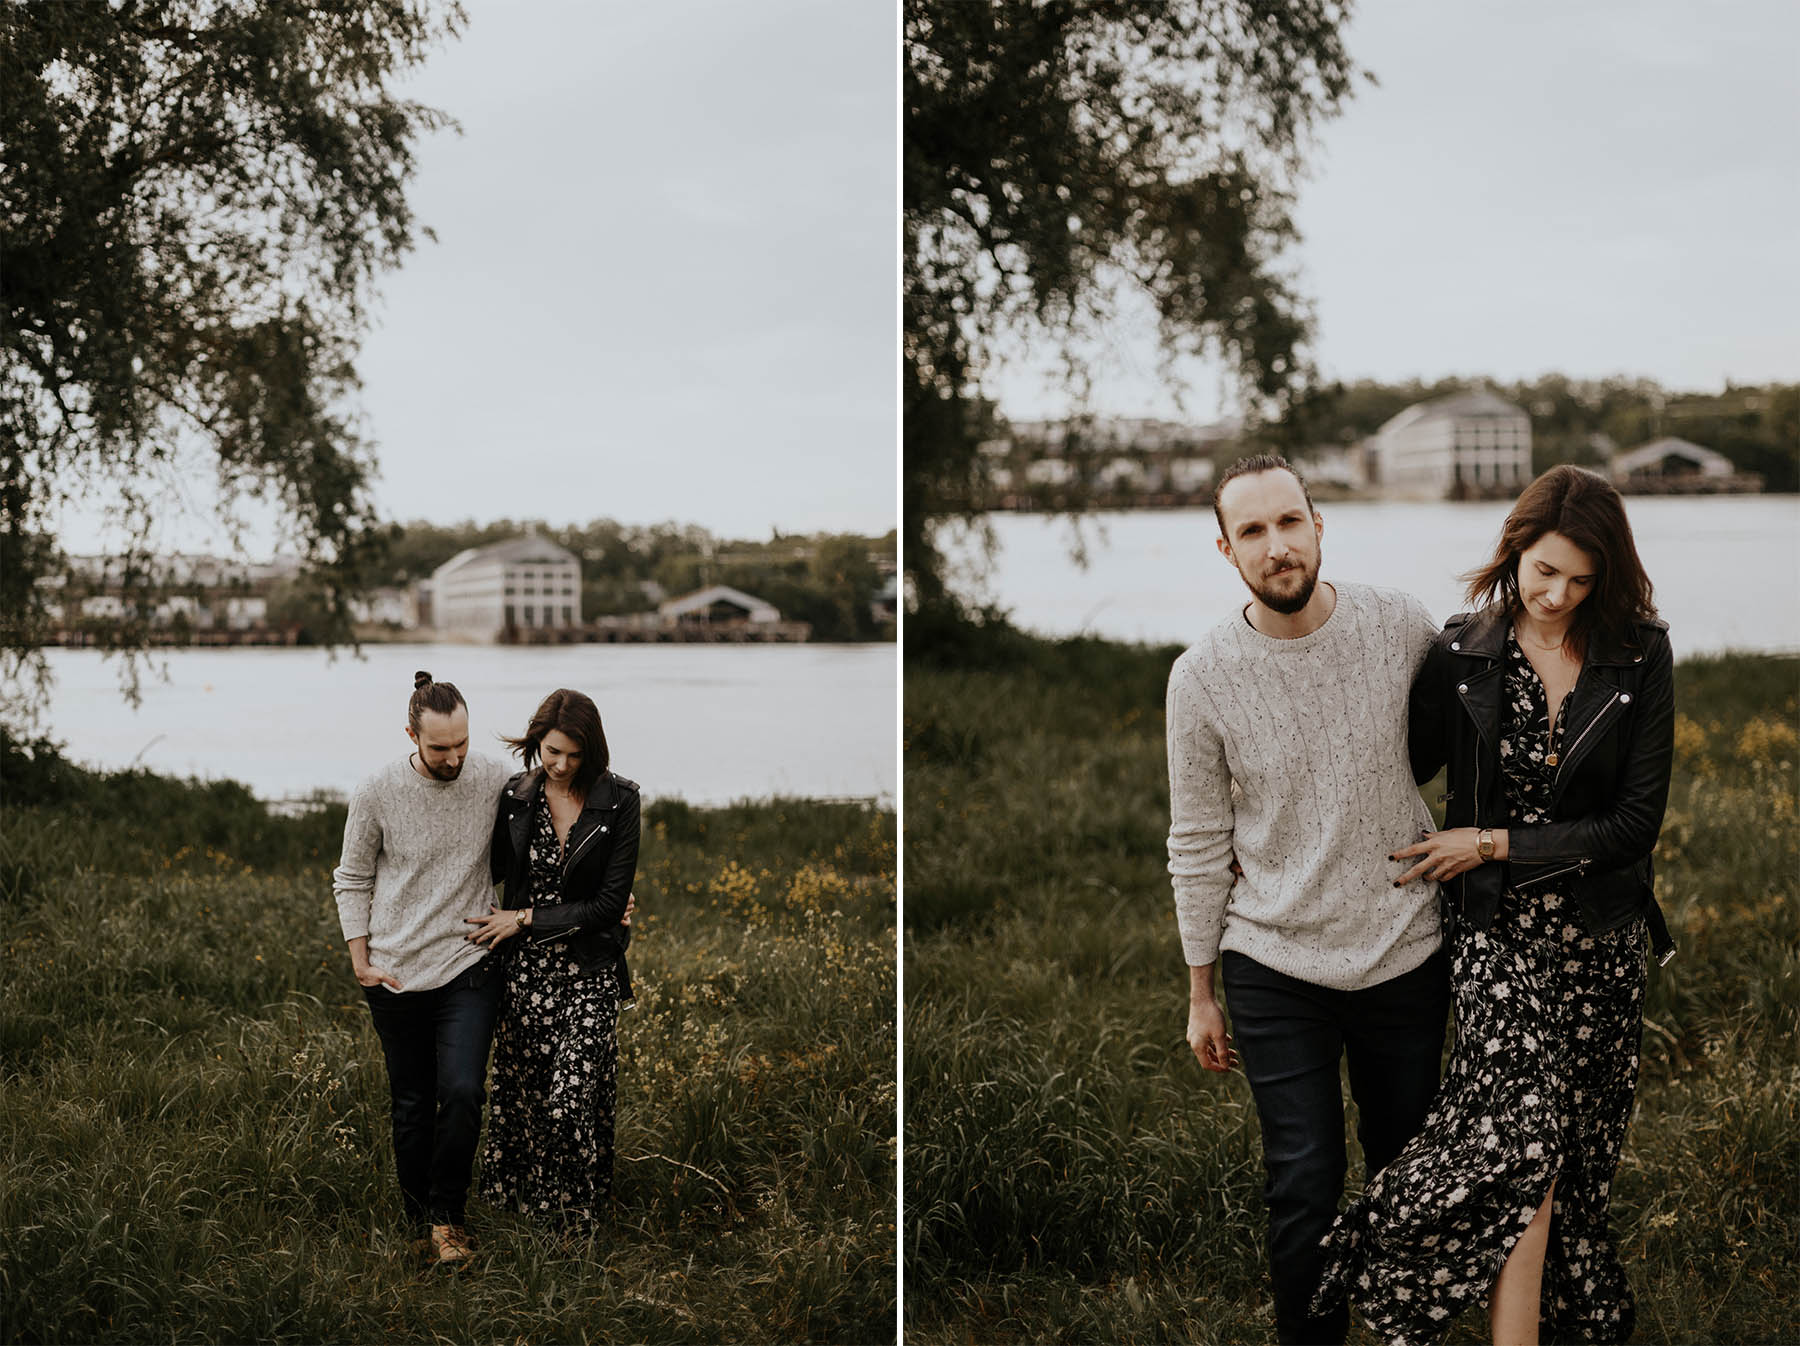 seance_engagement_trentemoult_flavie_nelly_photographe_nantes-5